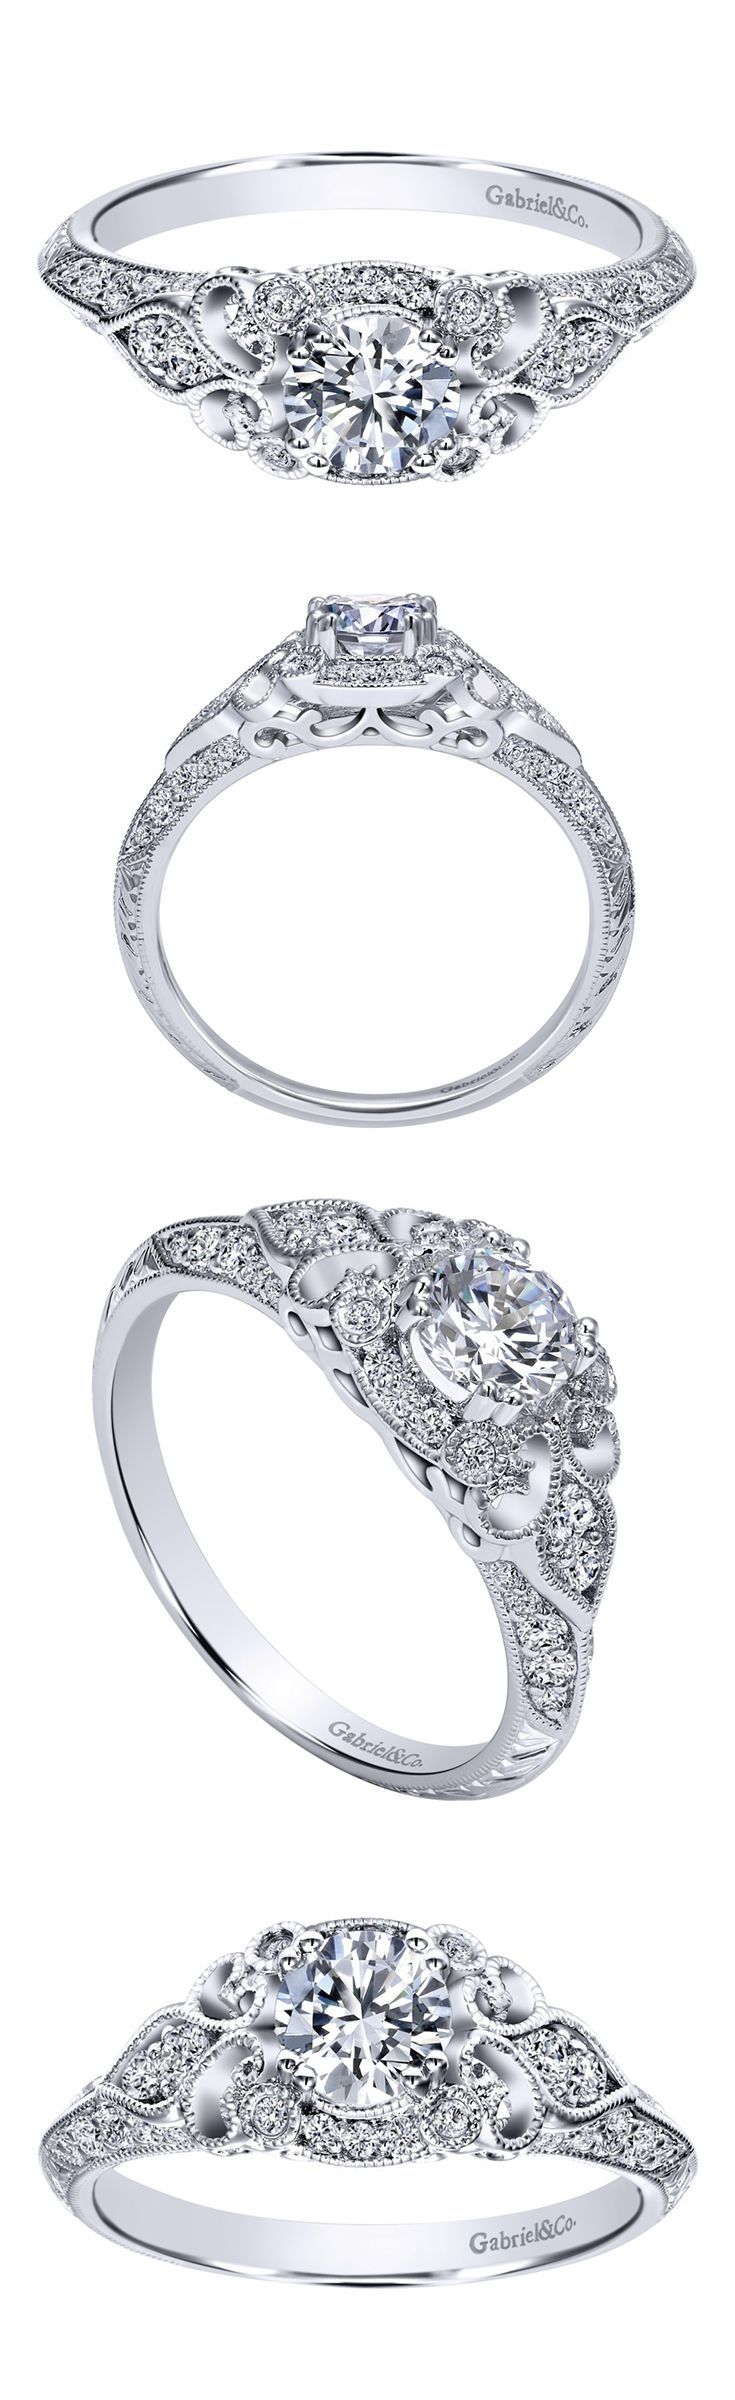 Looking For The Perfect Engagement Ring To Match With Your Vintage Wedding?  Check Out This